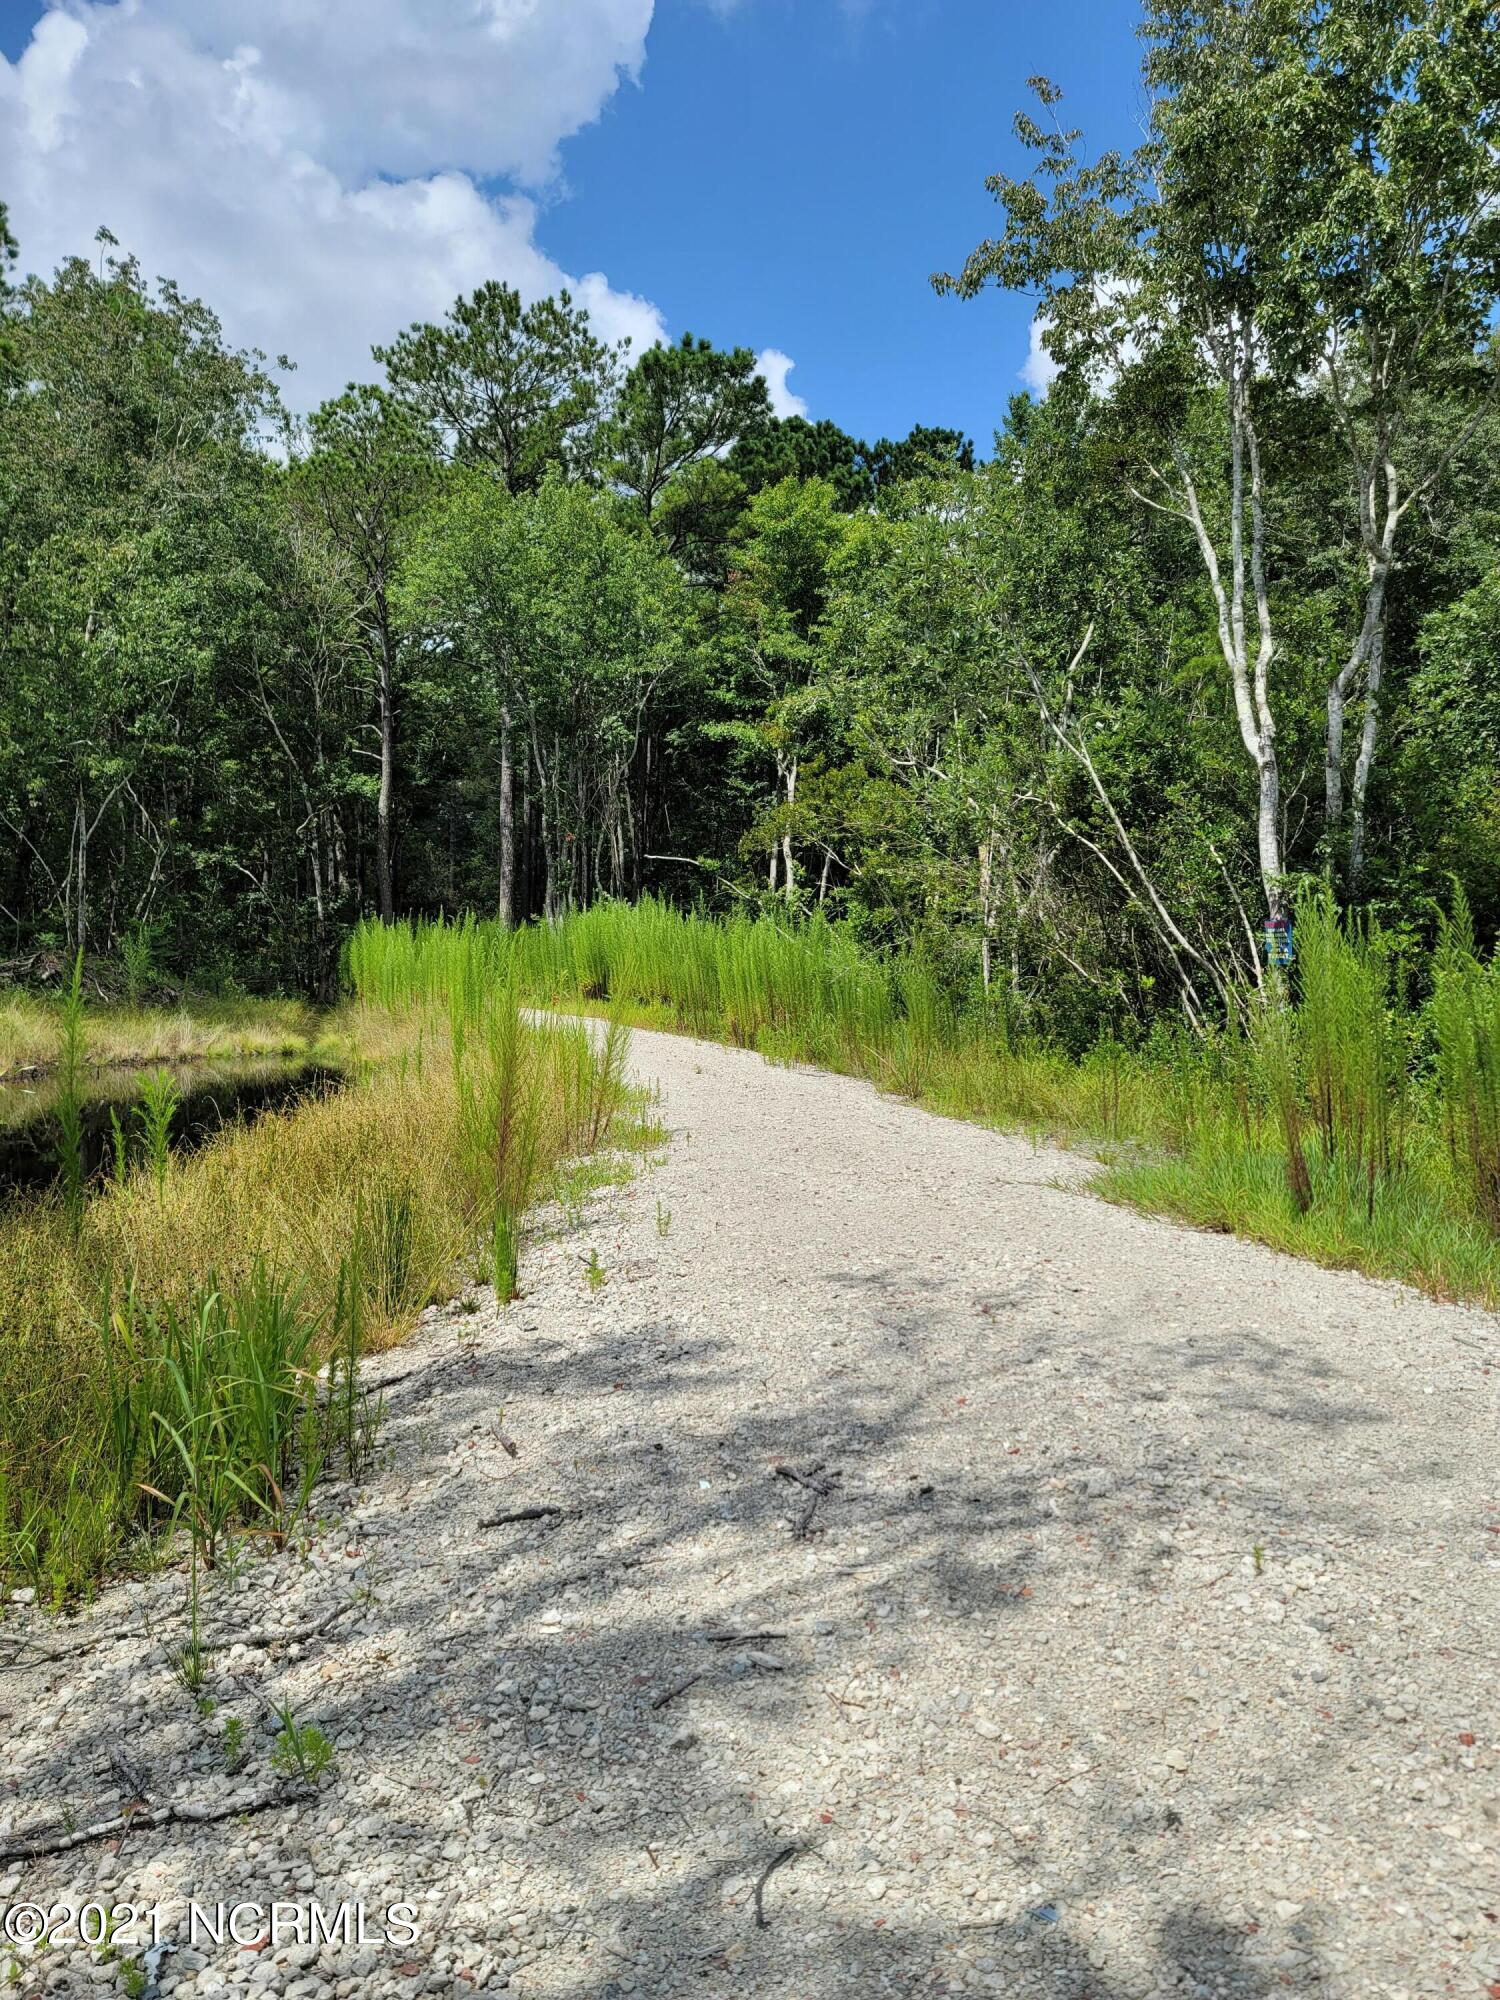 Looking for a lot in the woods? Check out this lot to see if its secluded enough for you! The lot in front and adjoining this one is available also. So you could have a larger lot/acreage! There are some deed restrictions and a preliminary soil tests.